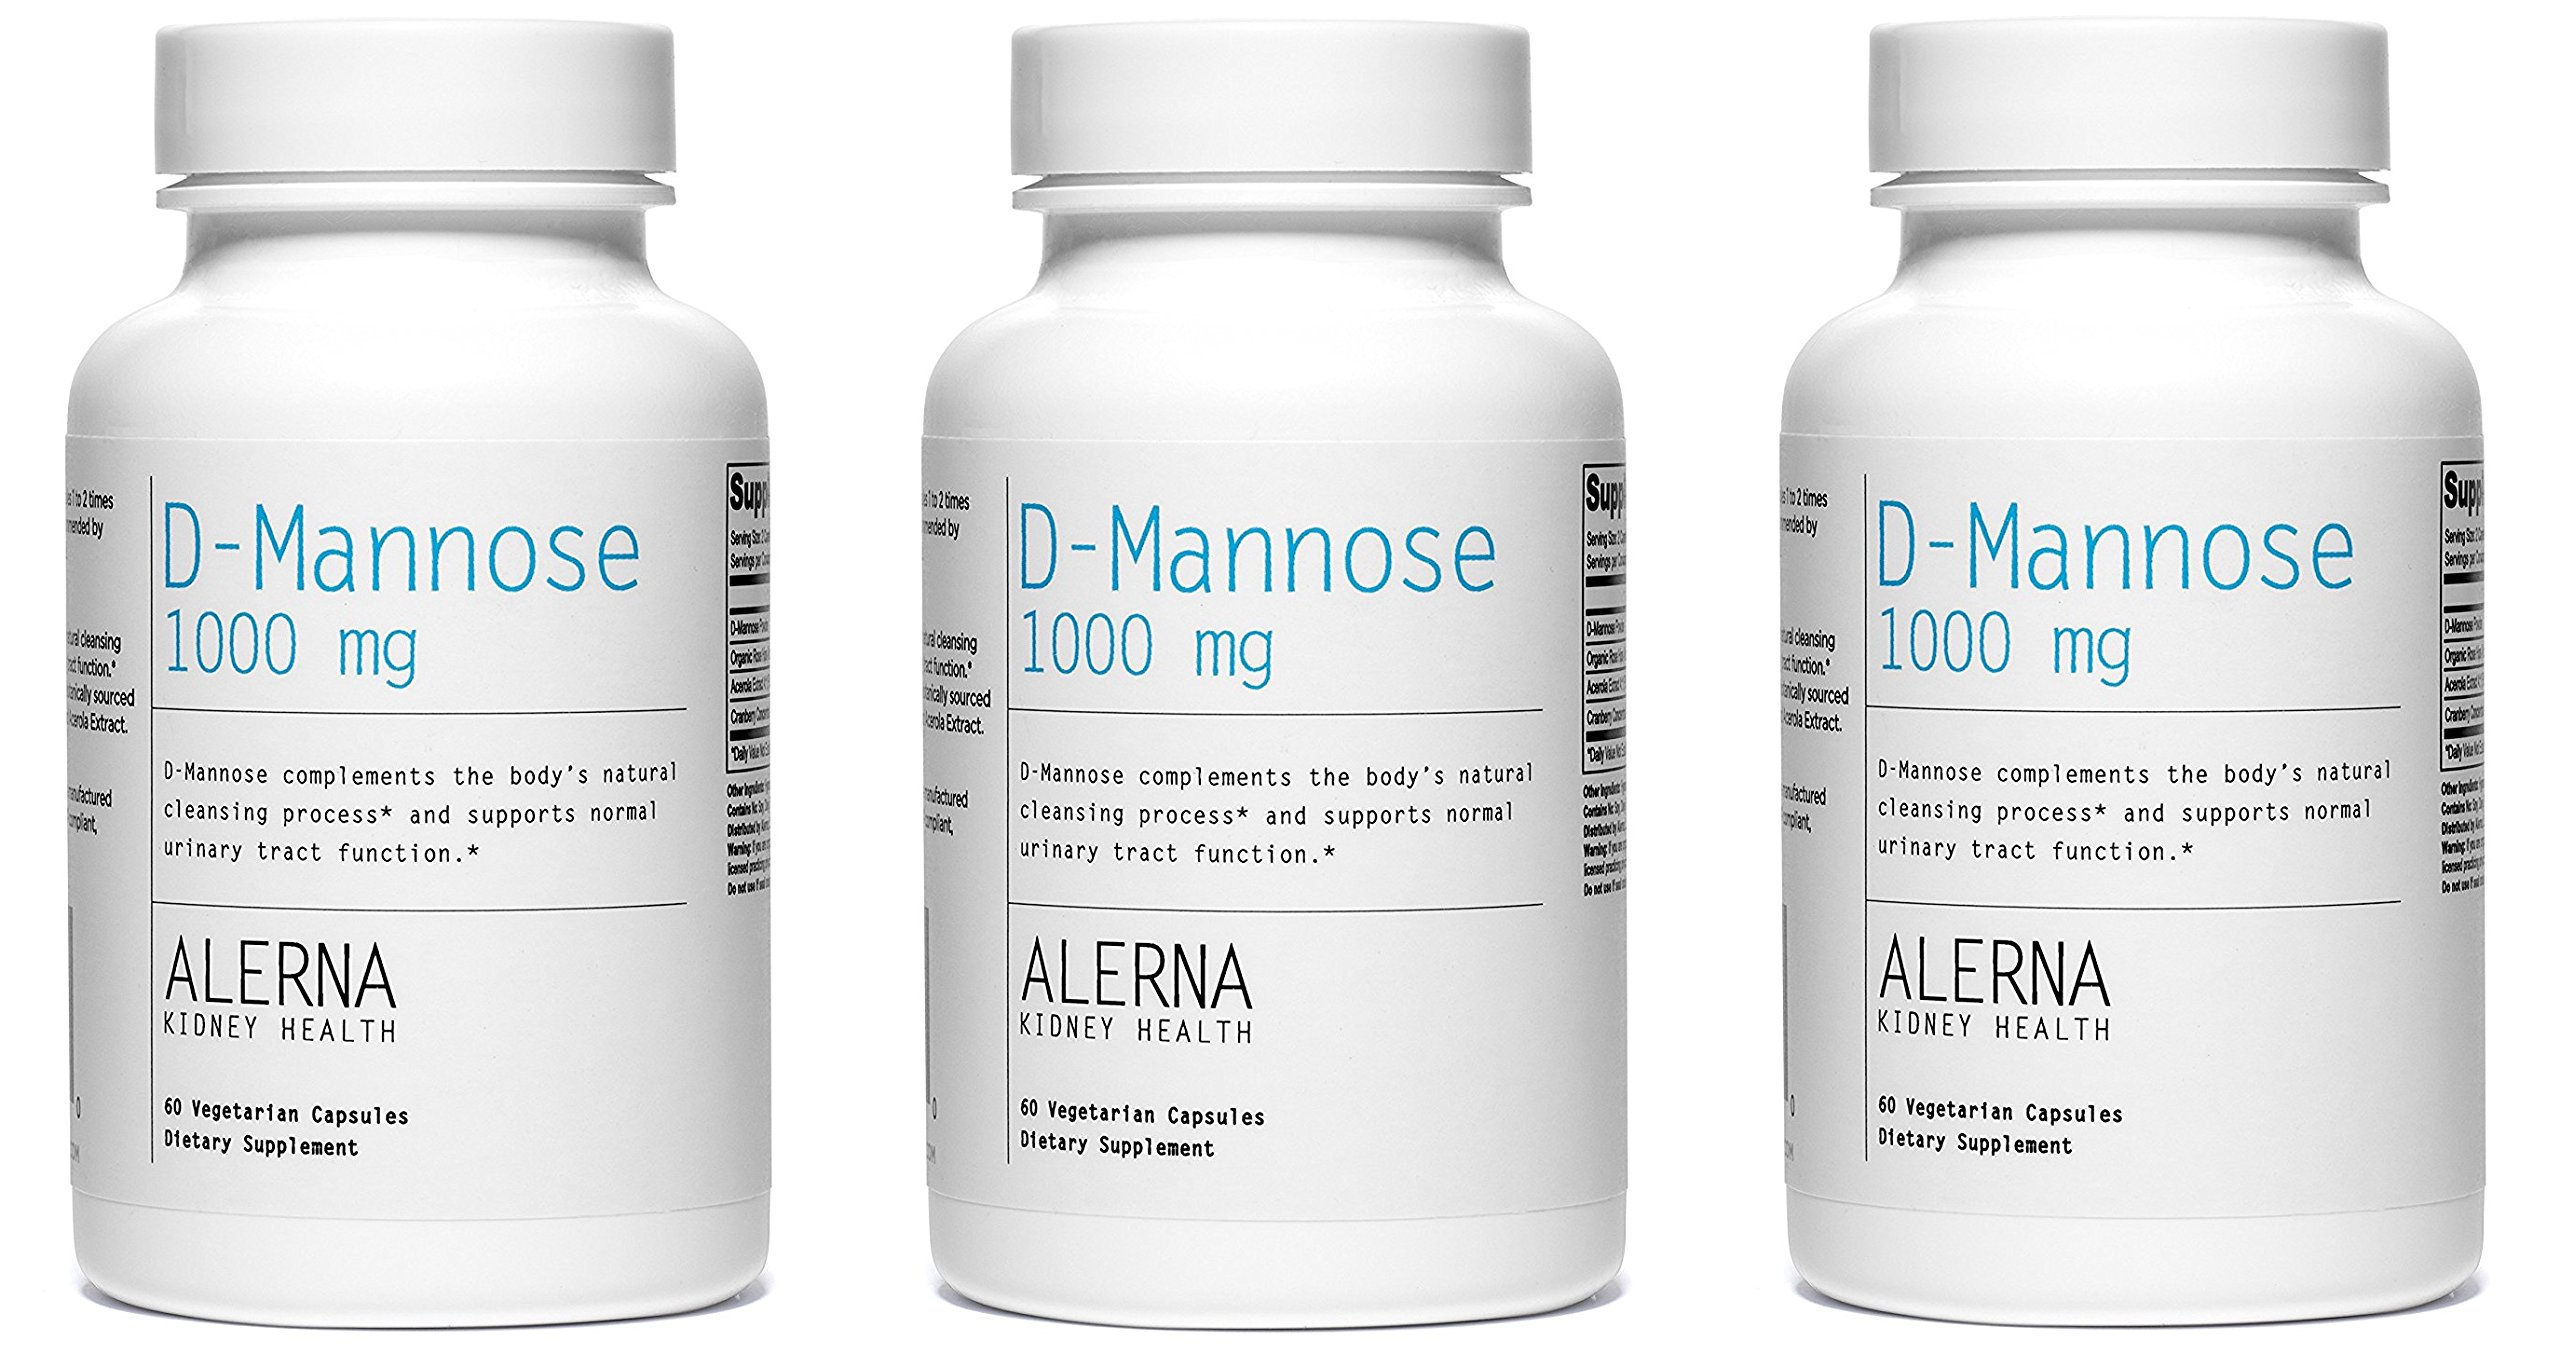 D-Mannose (1000mg) (w/Organic Rose Hips and Cranberry Concentrate) - Supports Normal Urinary Tract Function.* (3 Bottles)